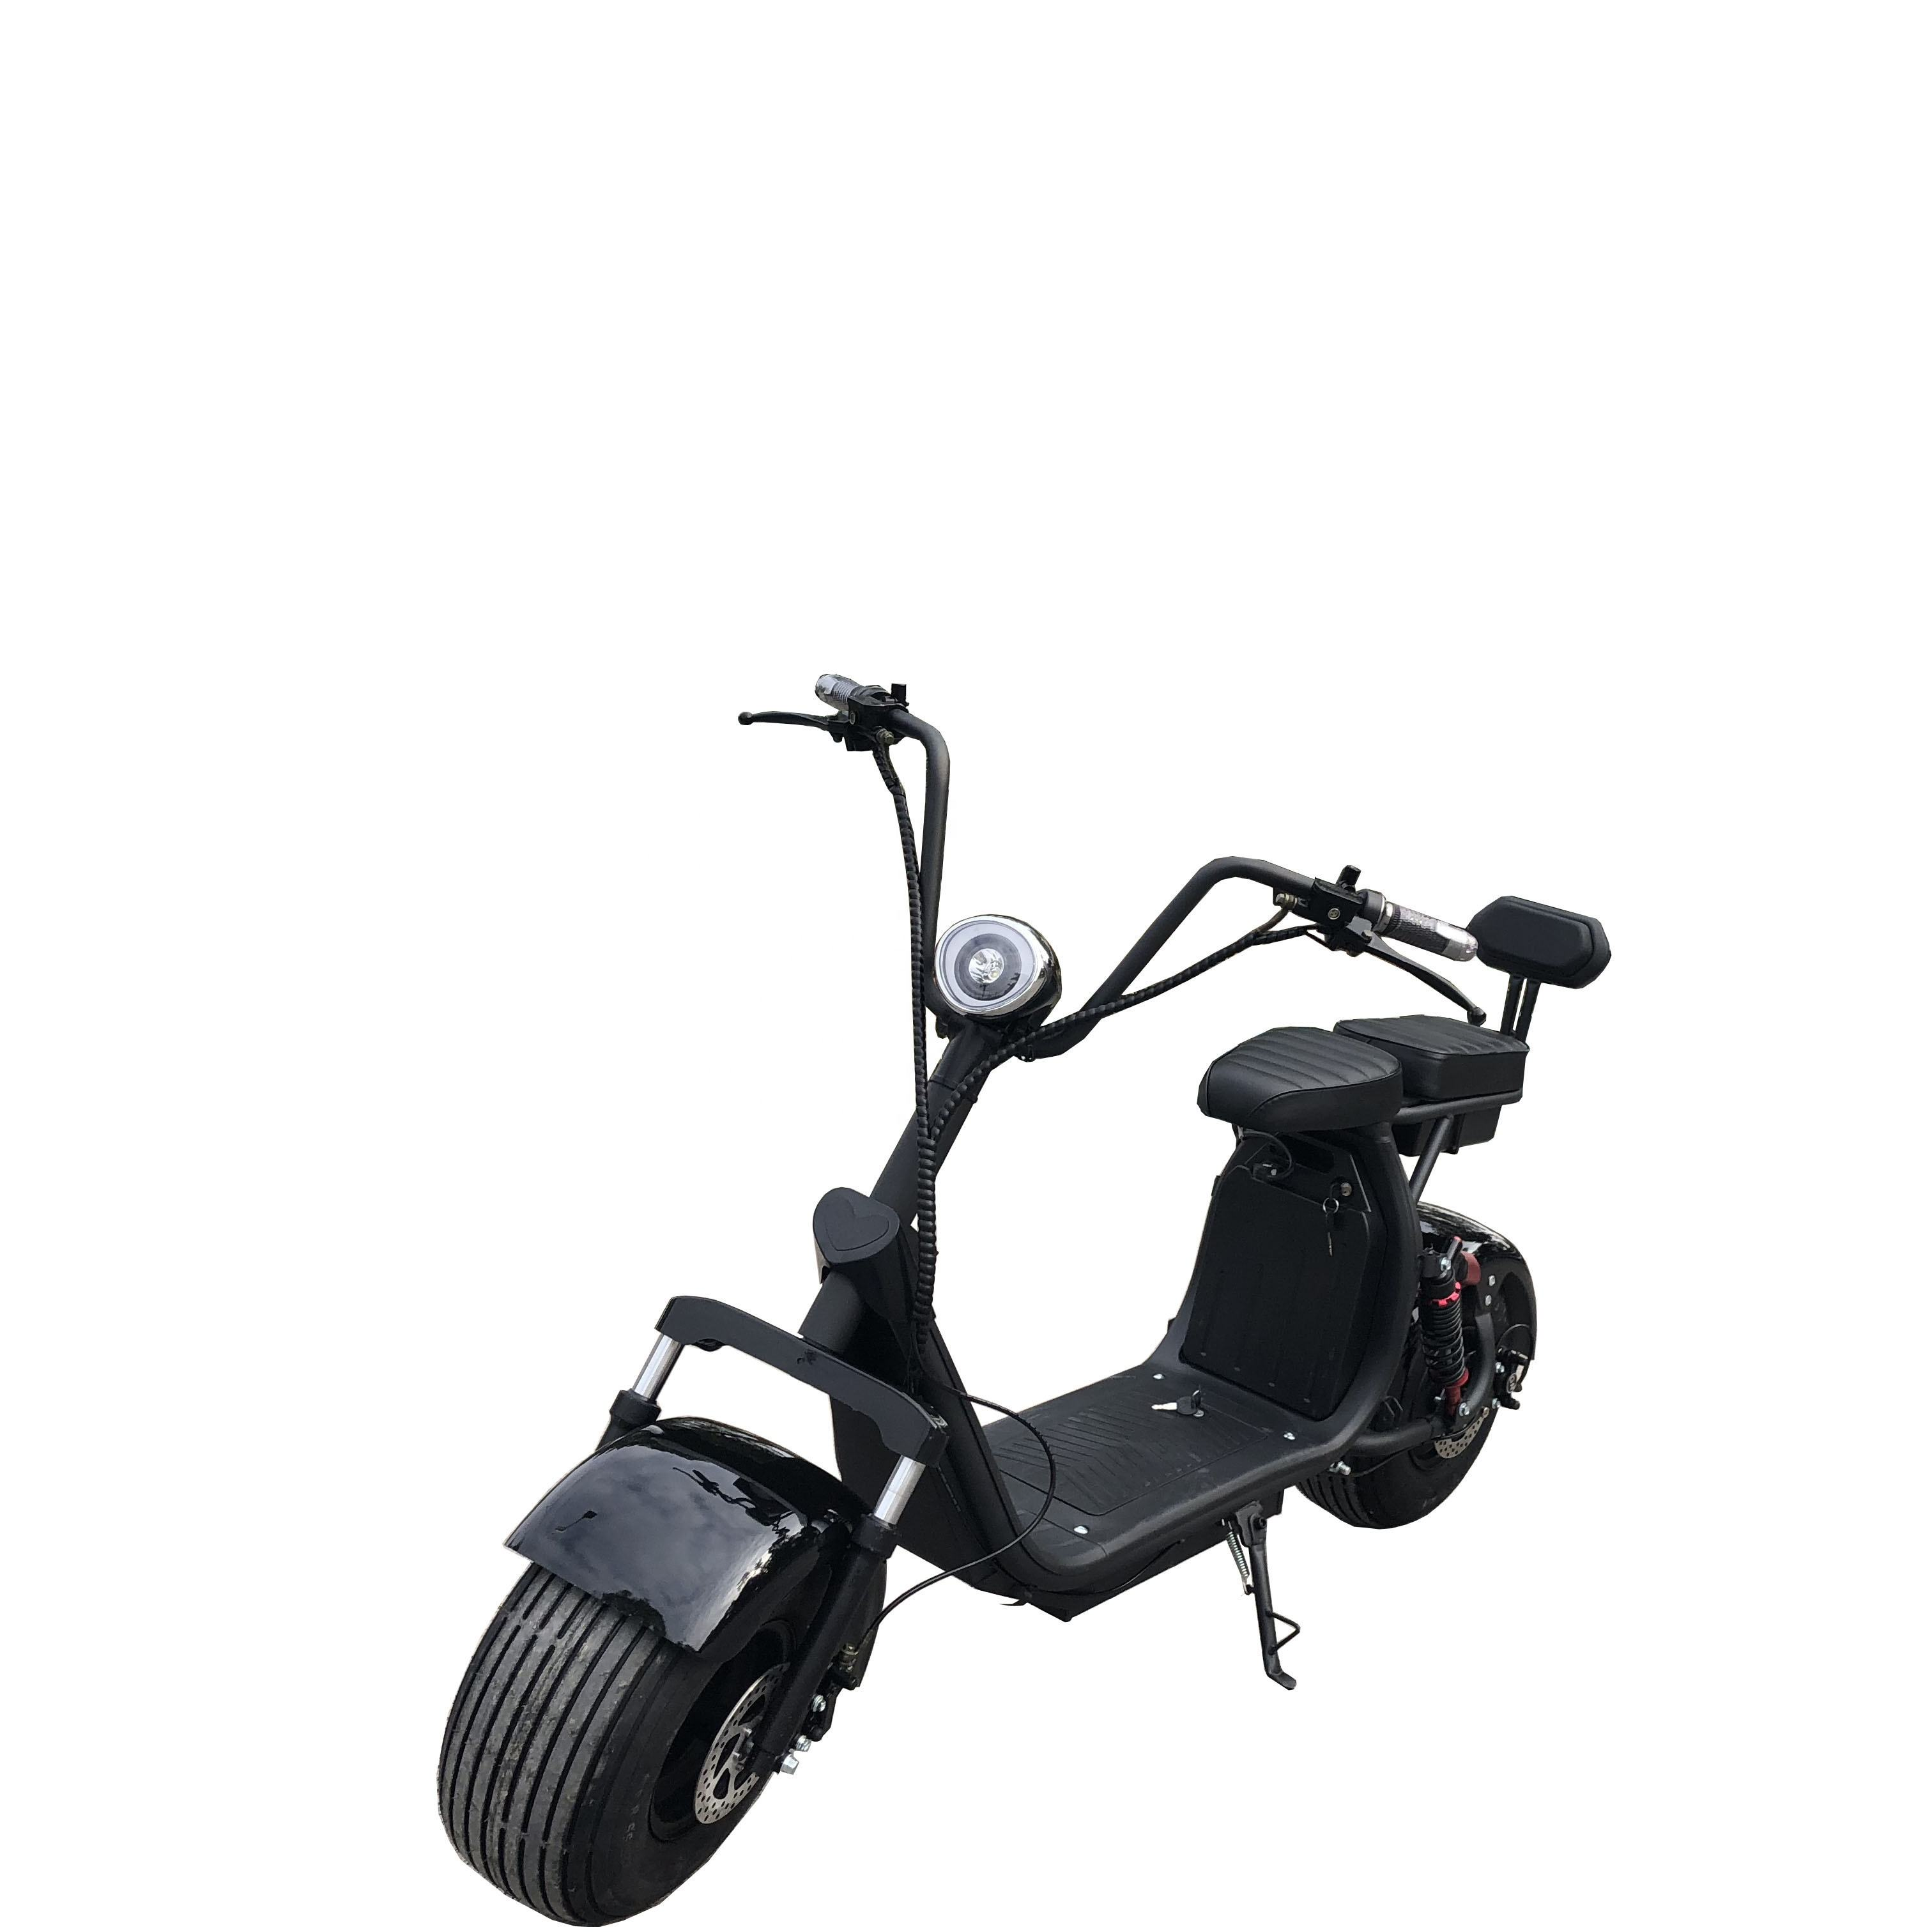 Factory supply electric scooter X3 model with angel eye headlight citycoco eec